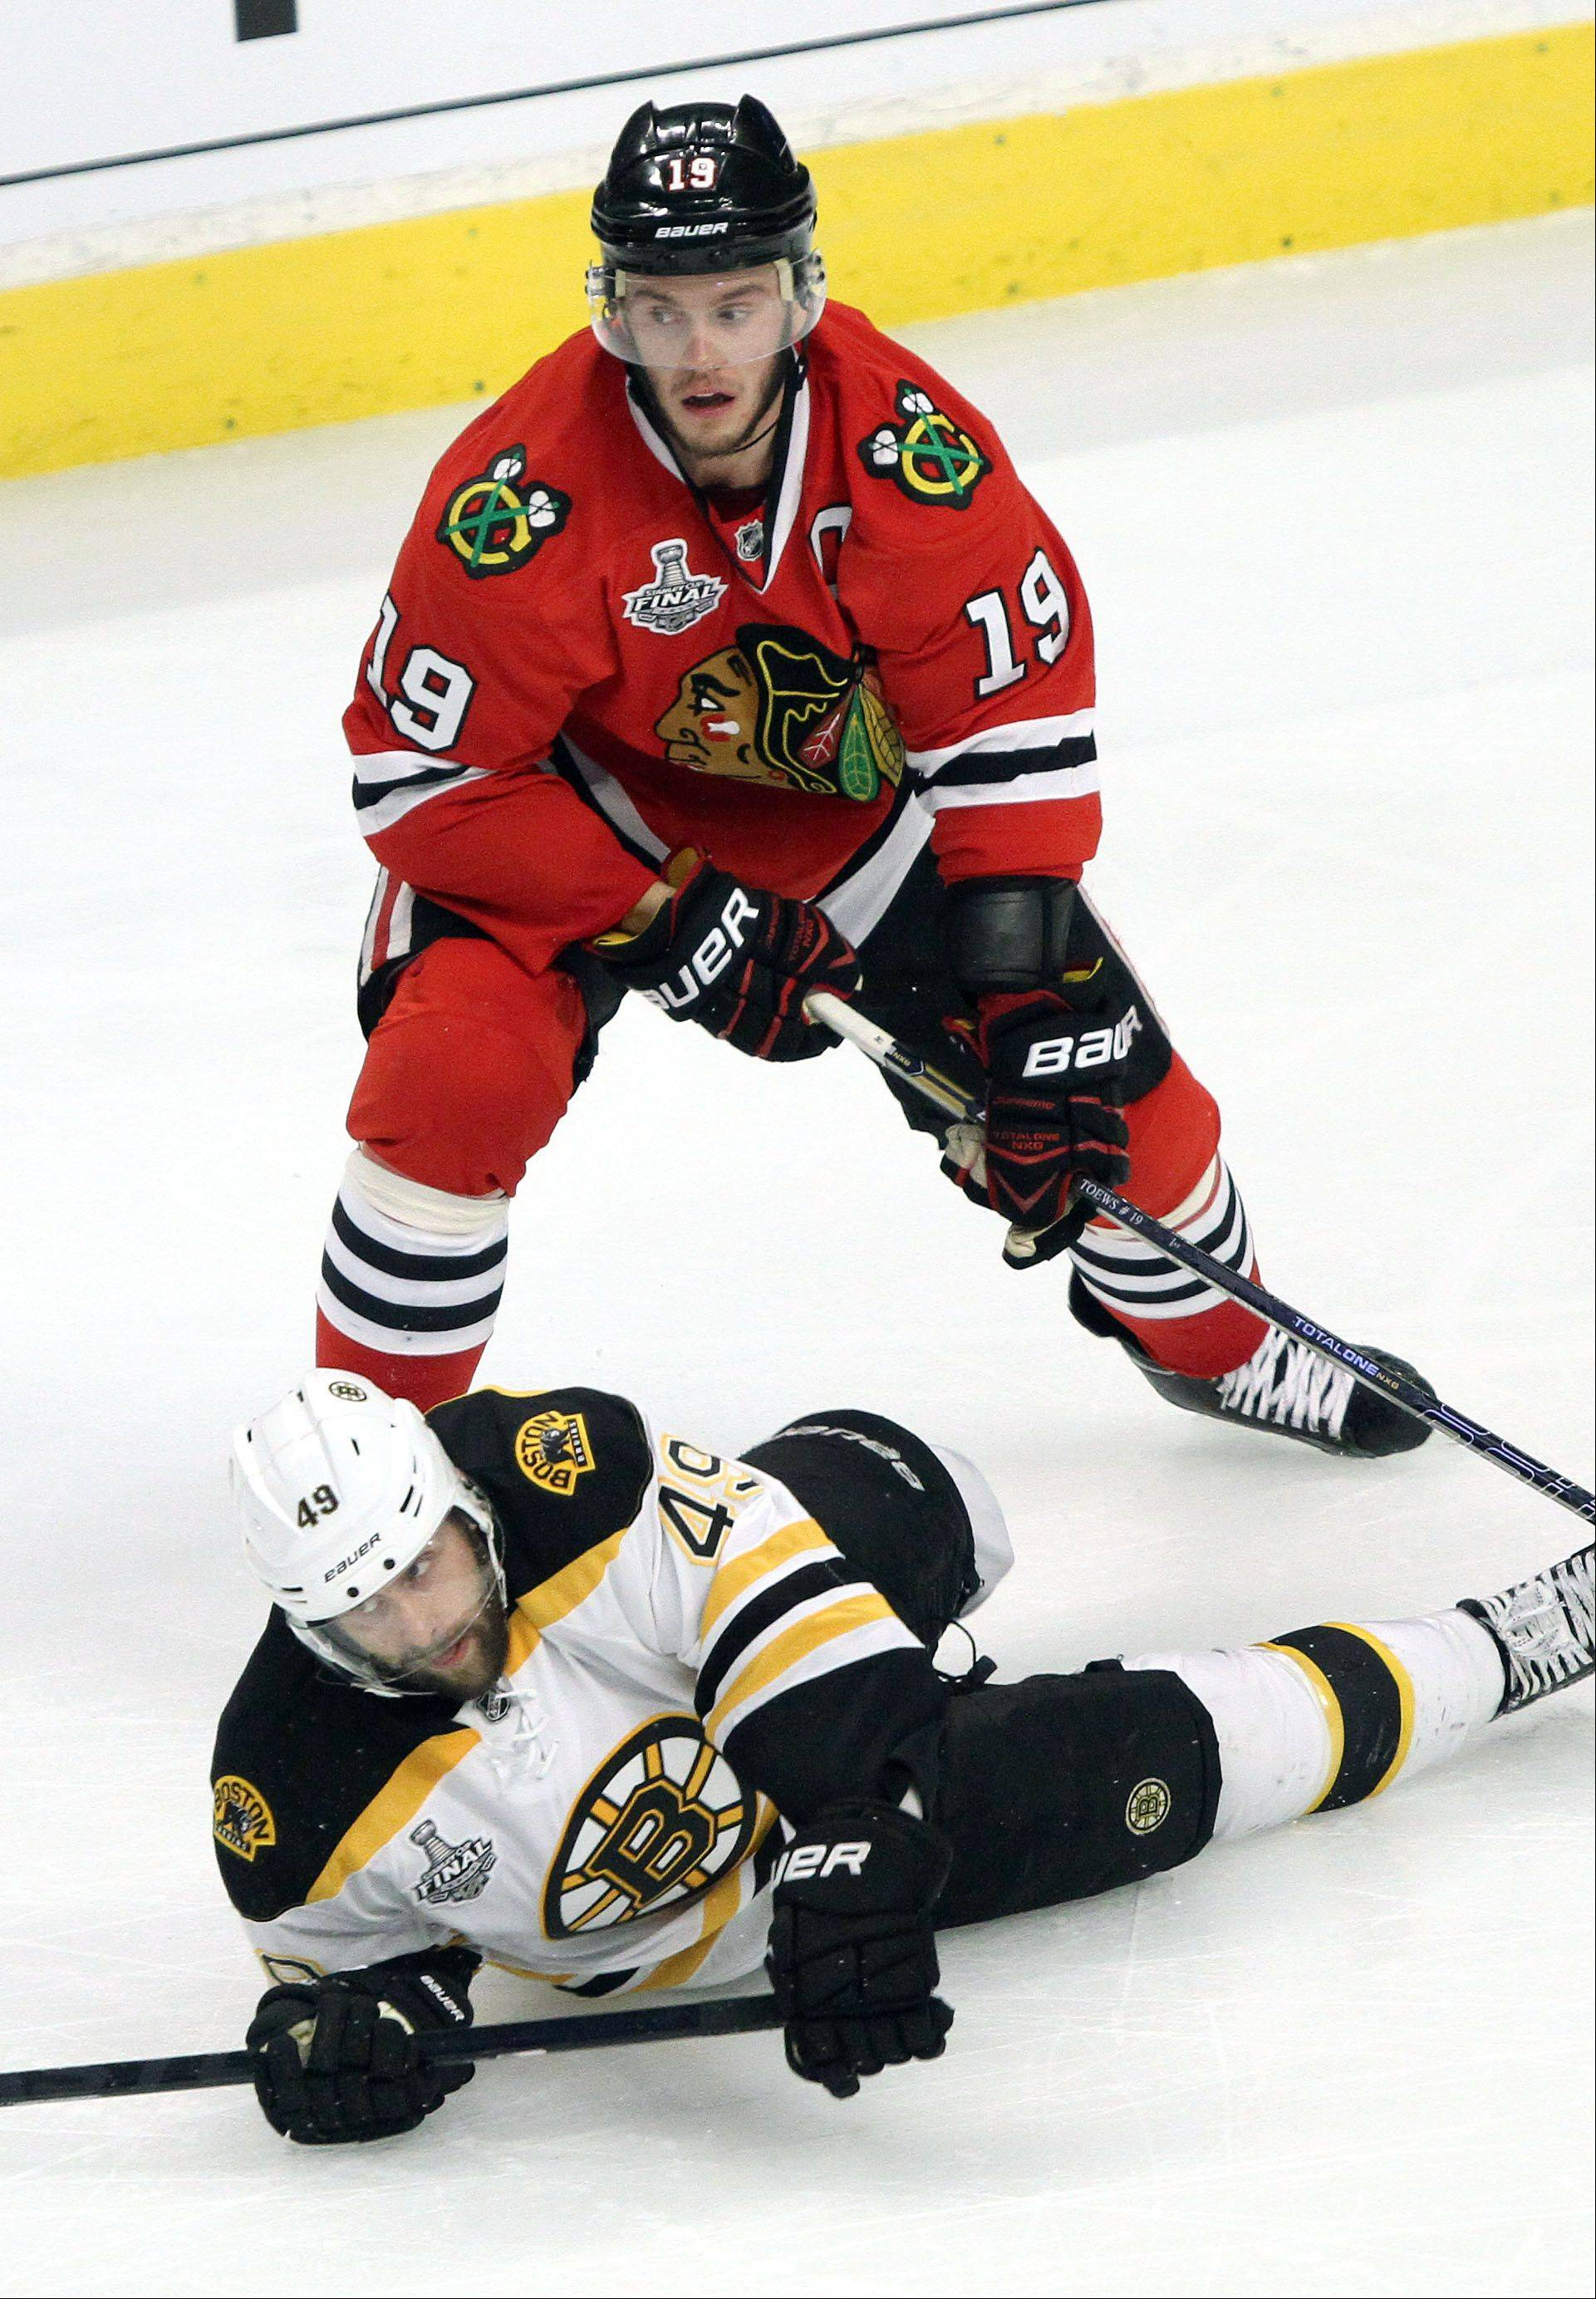 Chicago Blackhawks center Jonathan Toews knocks down Boston Bruins center Rich Peverley during game 2 of the Stanley Cup Finals against the Boston Bruins at the United Center in Chicago Saturday.